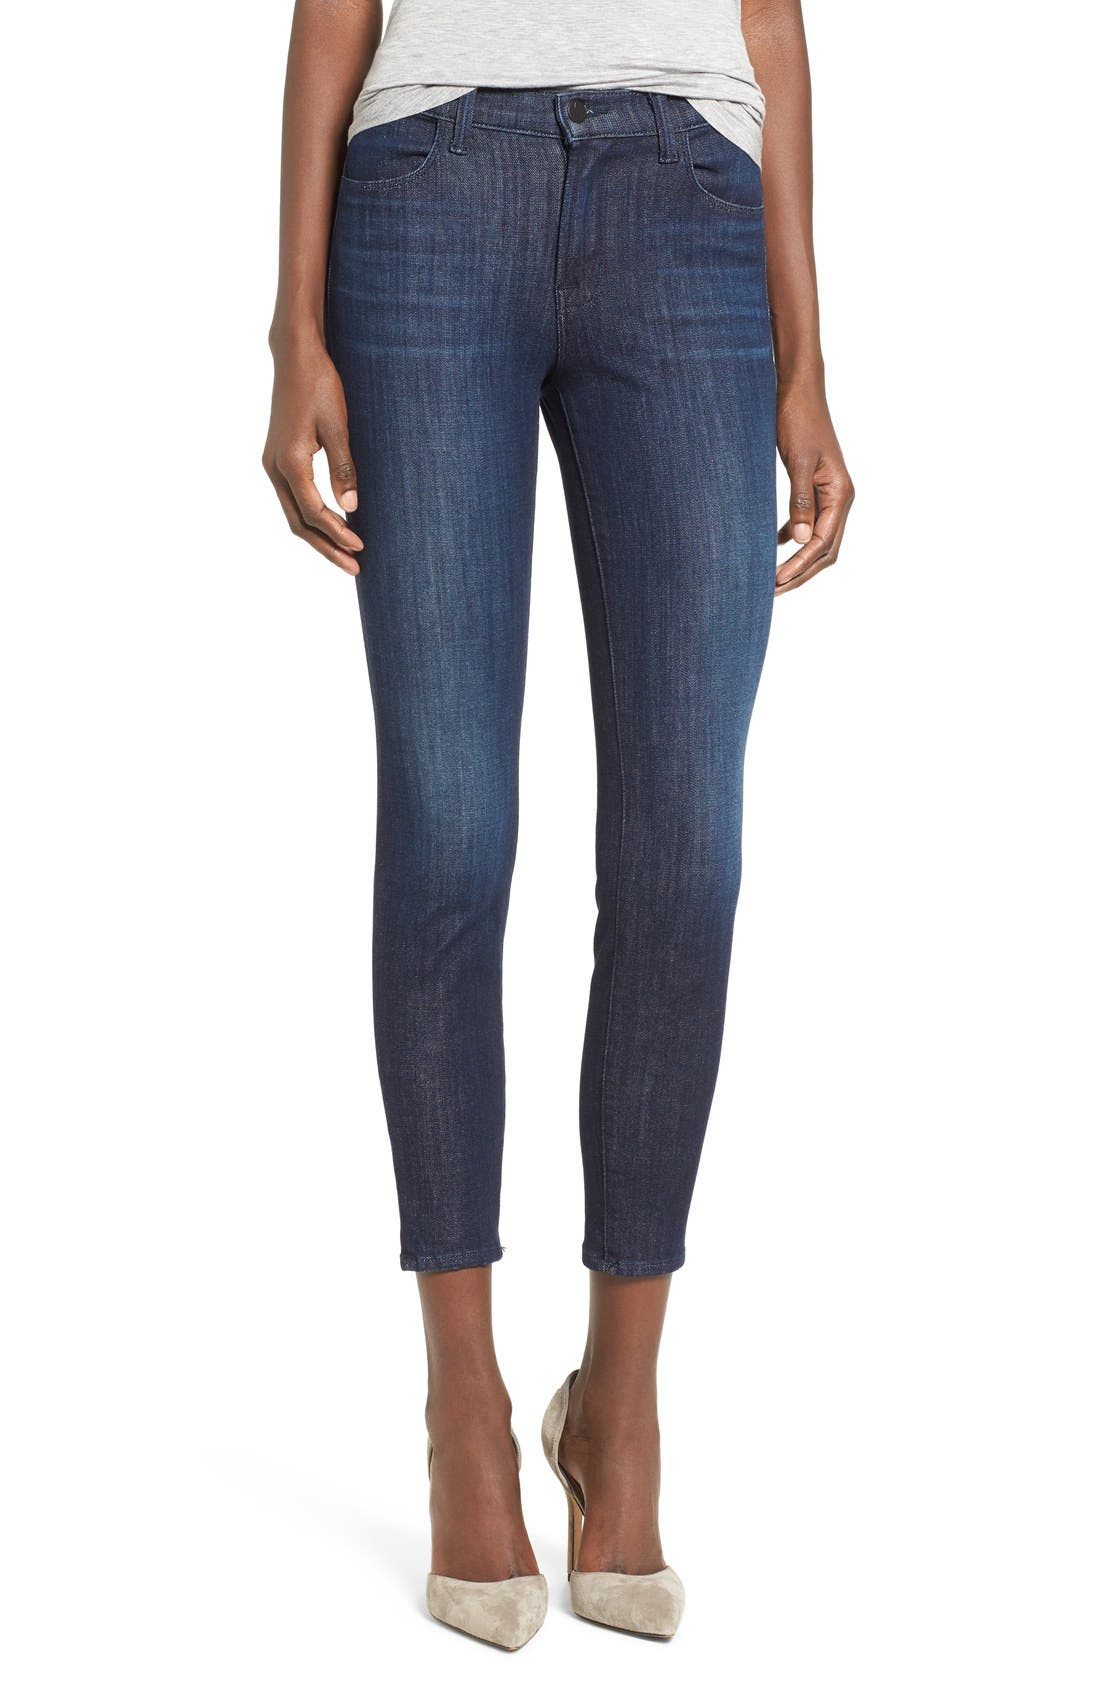 J BRAND, Alana Ripped High Rise Crop Skinny Jeans, Main thumbnail 1, color, 408